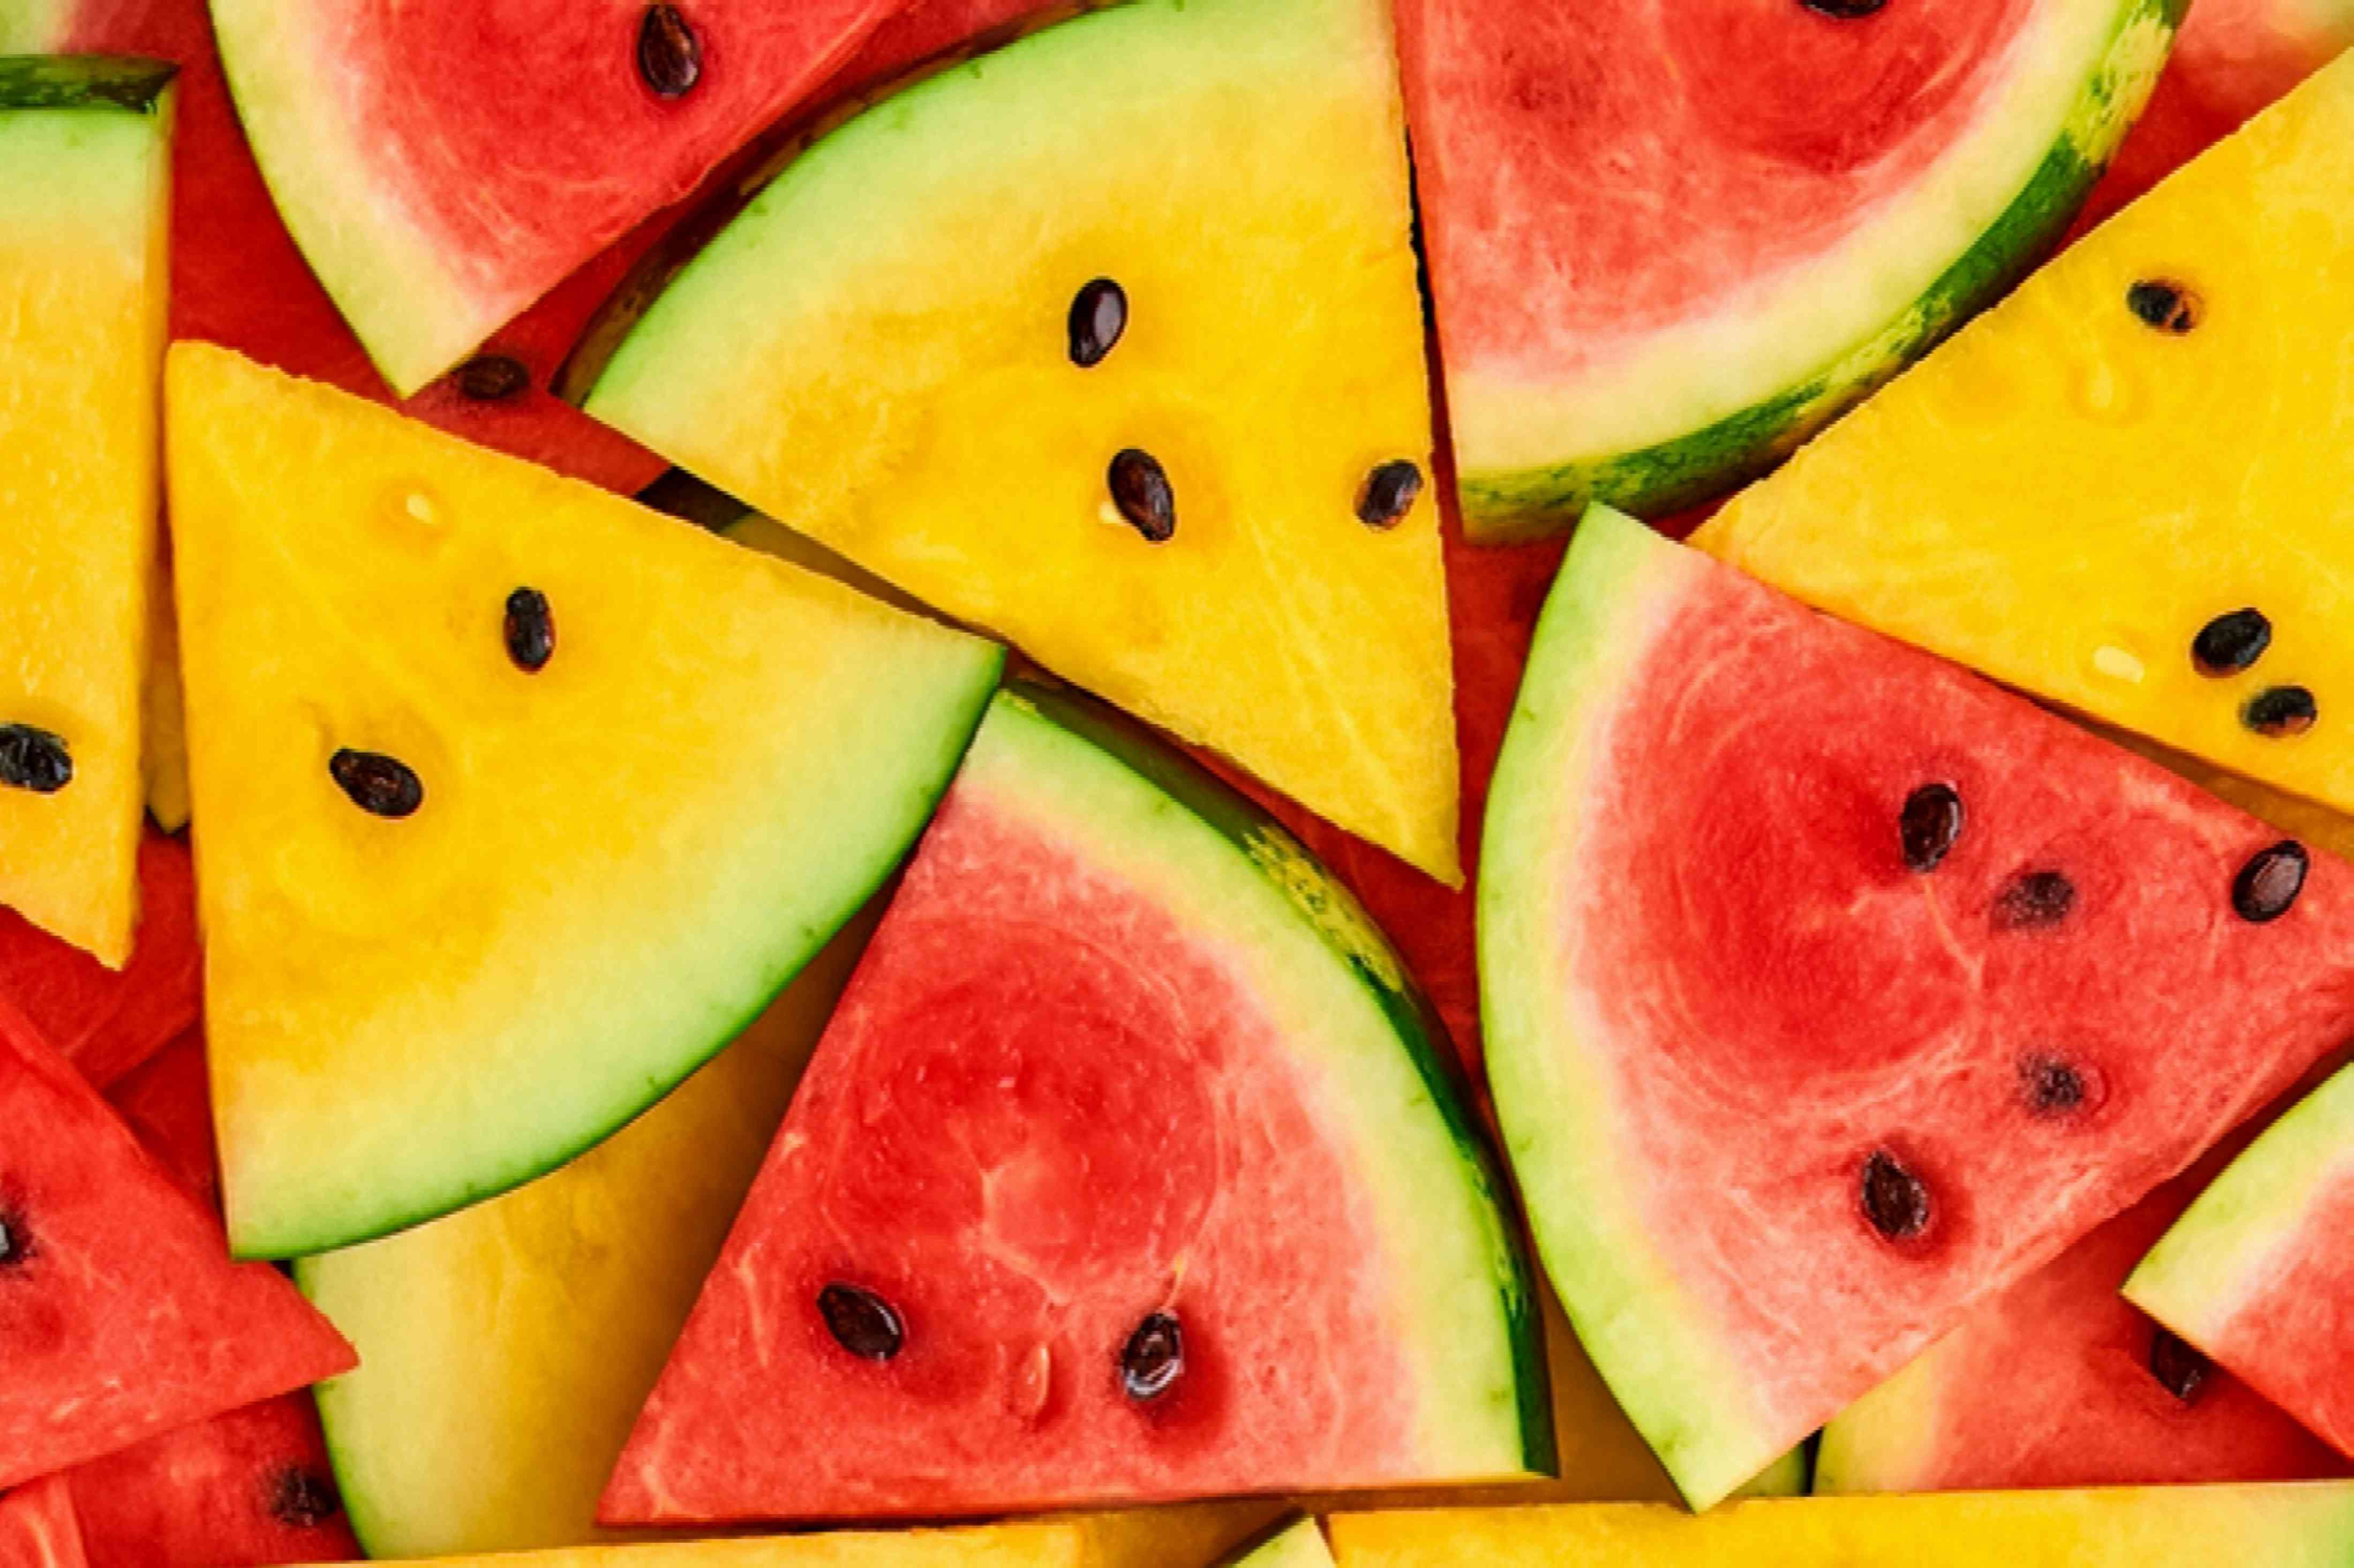 Cut slices of yellow and red watermelon stacked on each other